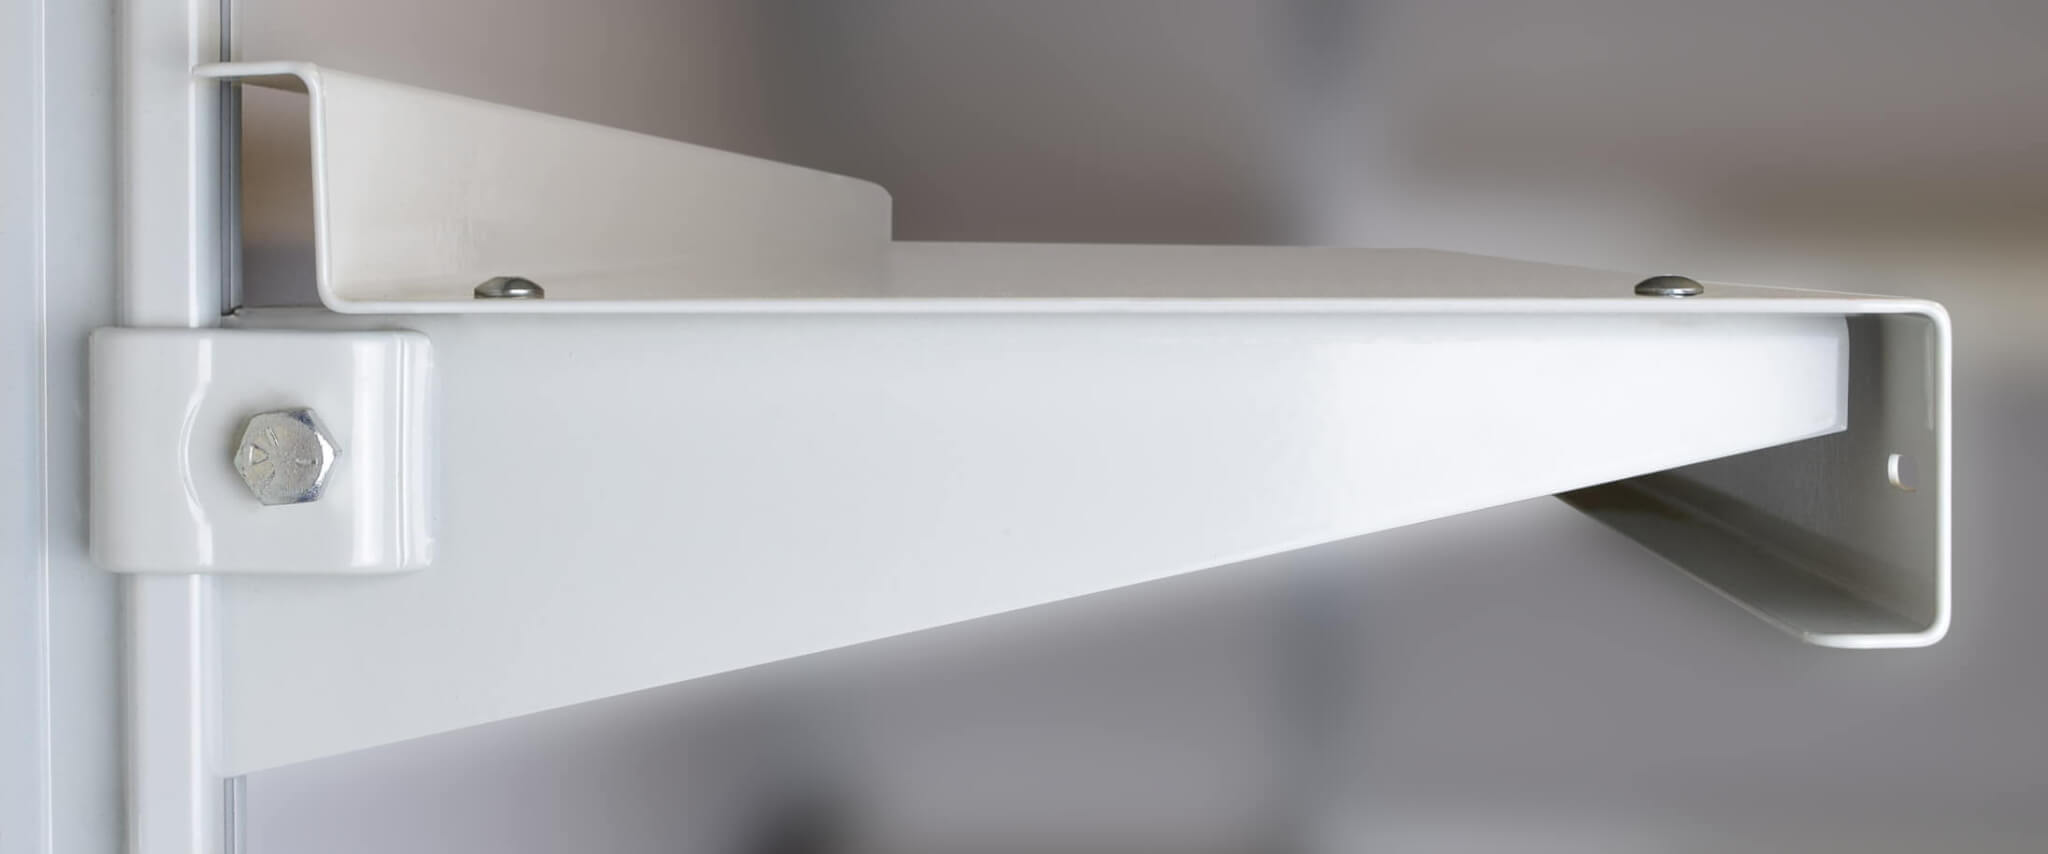 Heavy Duty Shelving Brackets in a Variety of Finishes